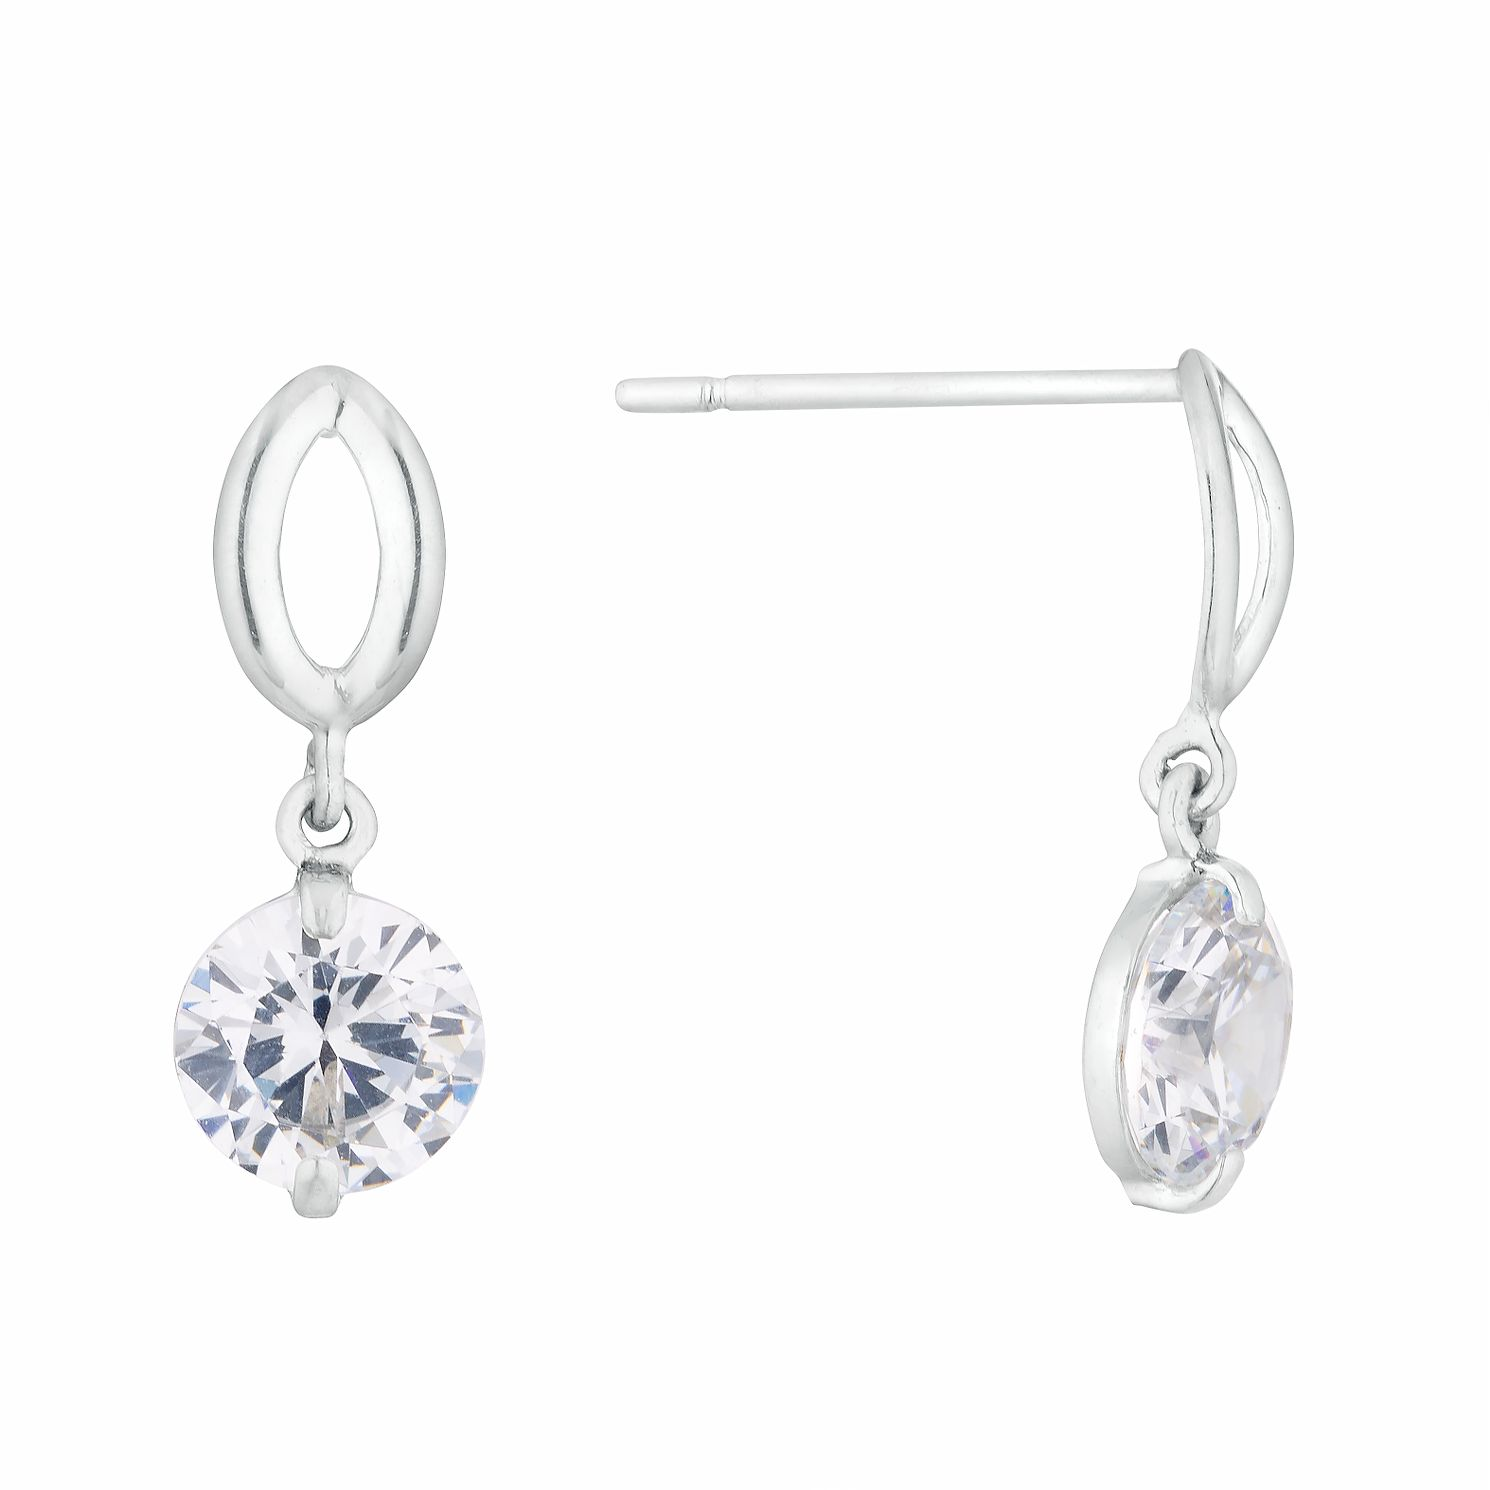 9ct White Gold Cubic Zirconia Open Oval Drop Earrings - Product number 3154017